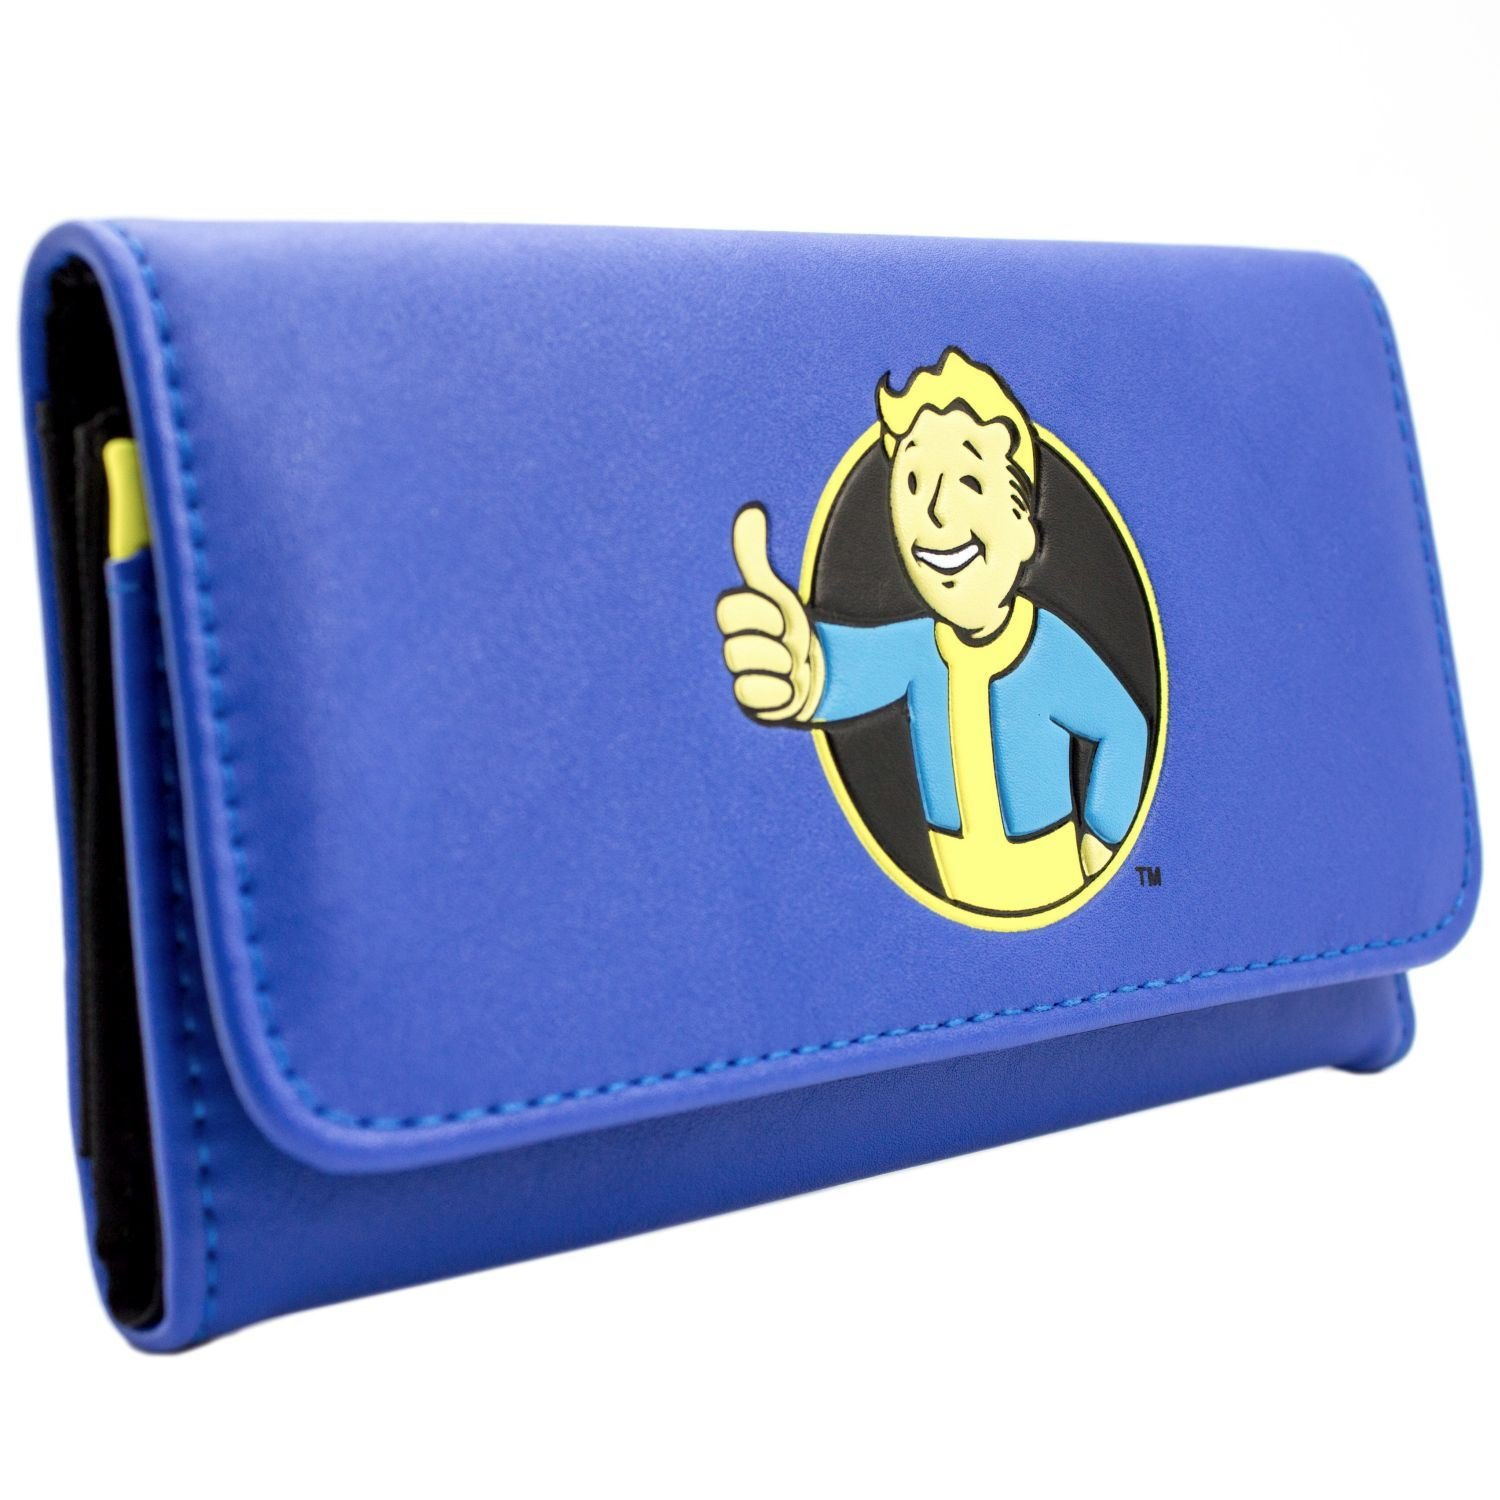 Bethesda Fallout 4 Thumbs Up Vault Bleu Portefeuille 28865